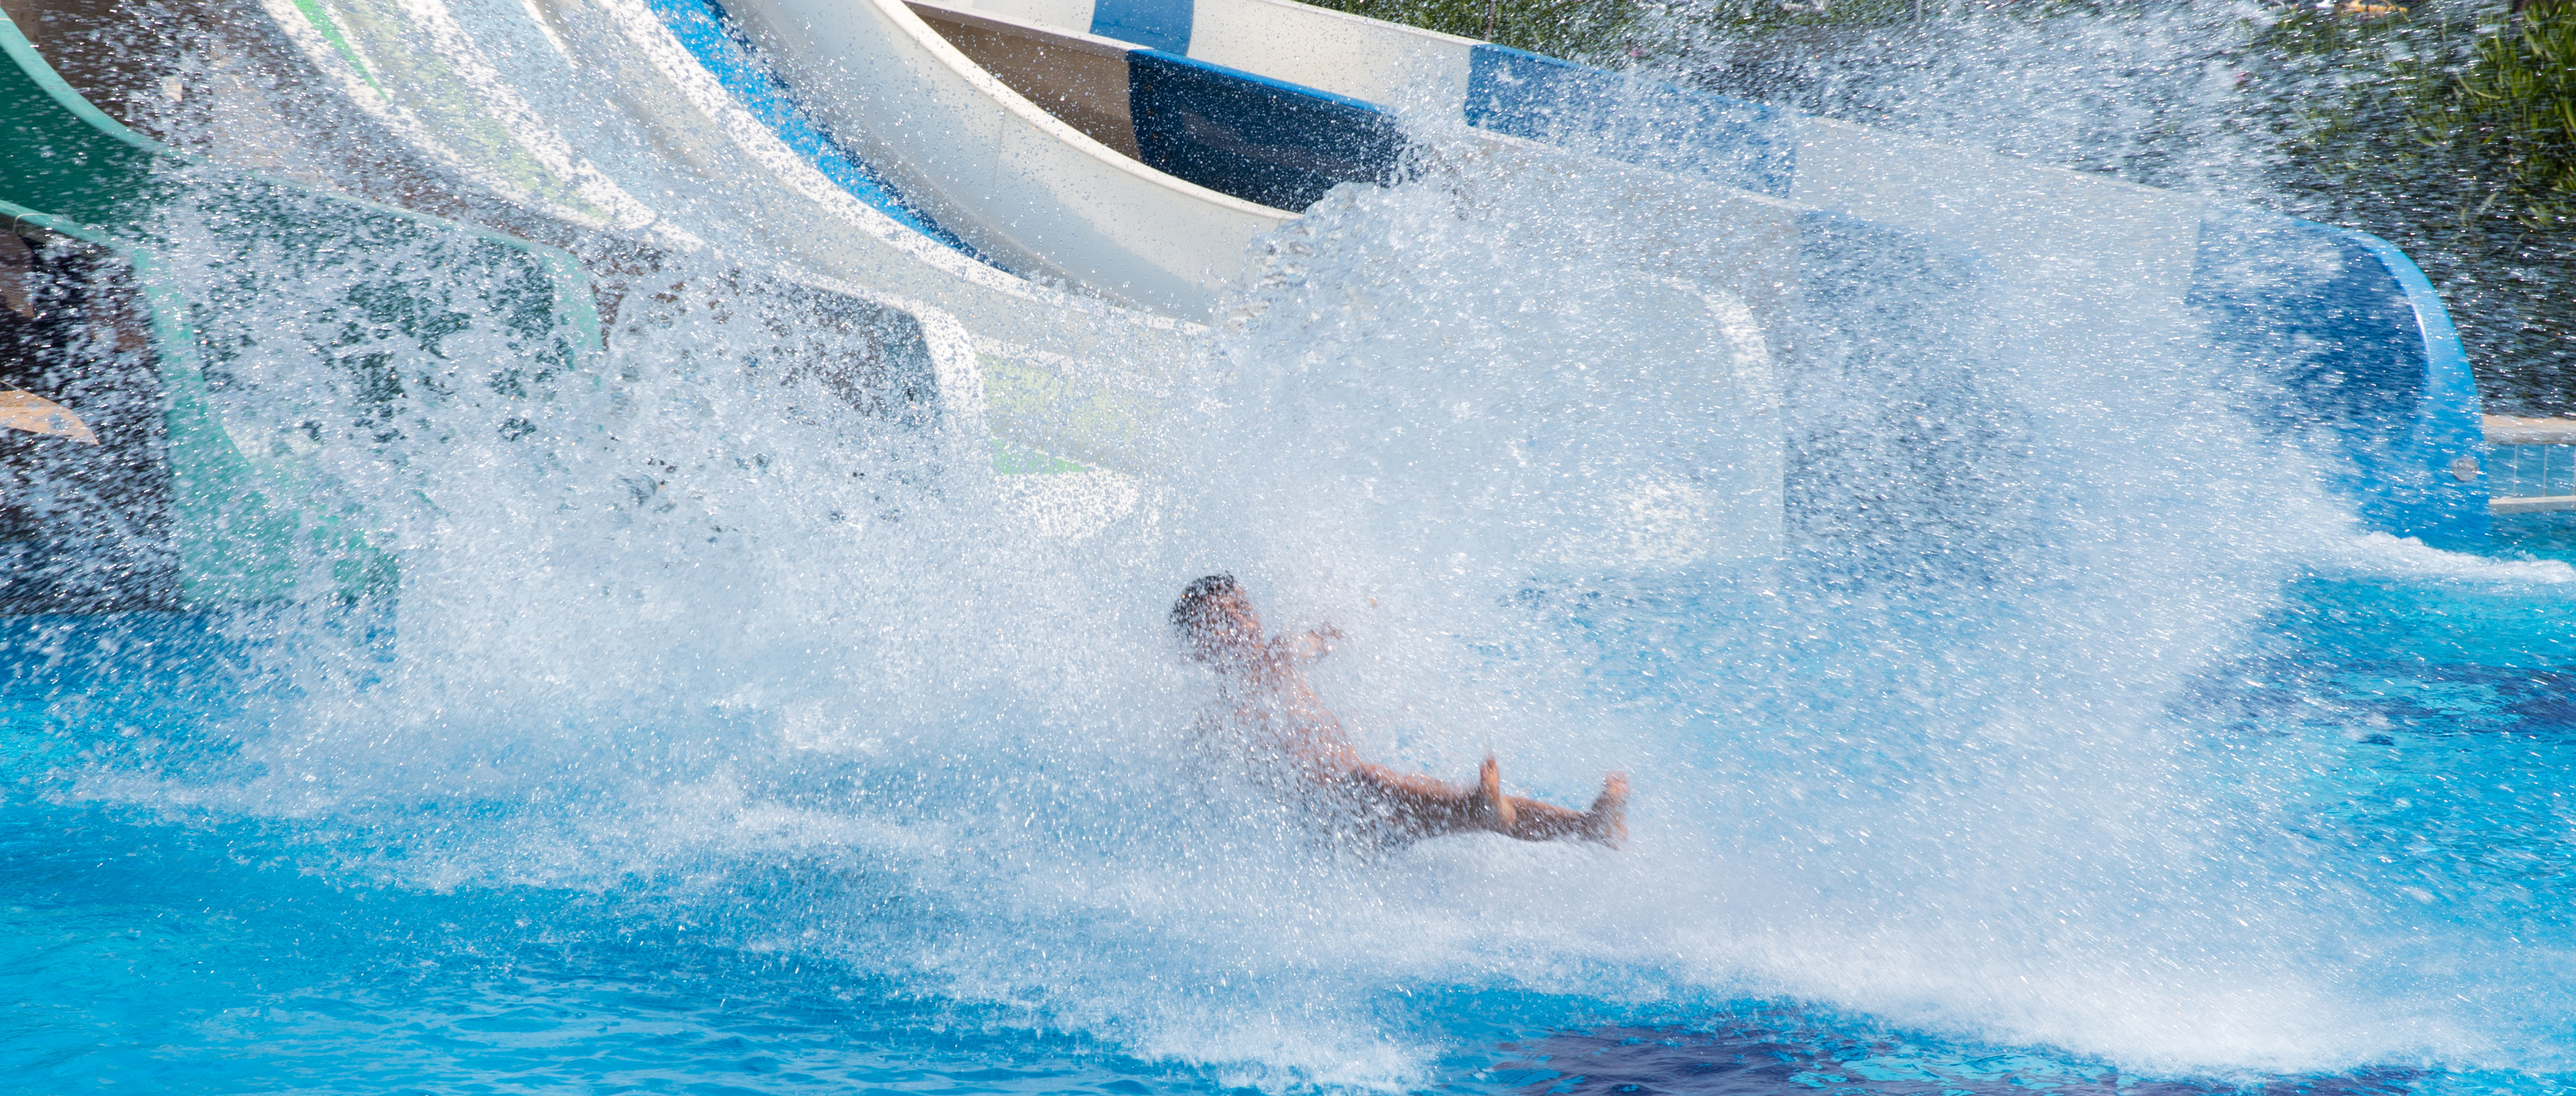 The Markets Corner: Water. A person splashes into the pool at the bottom of a waterslide.